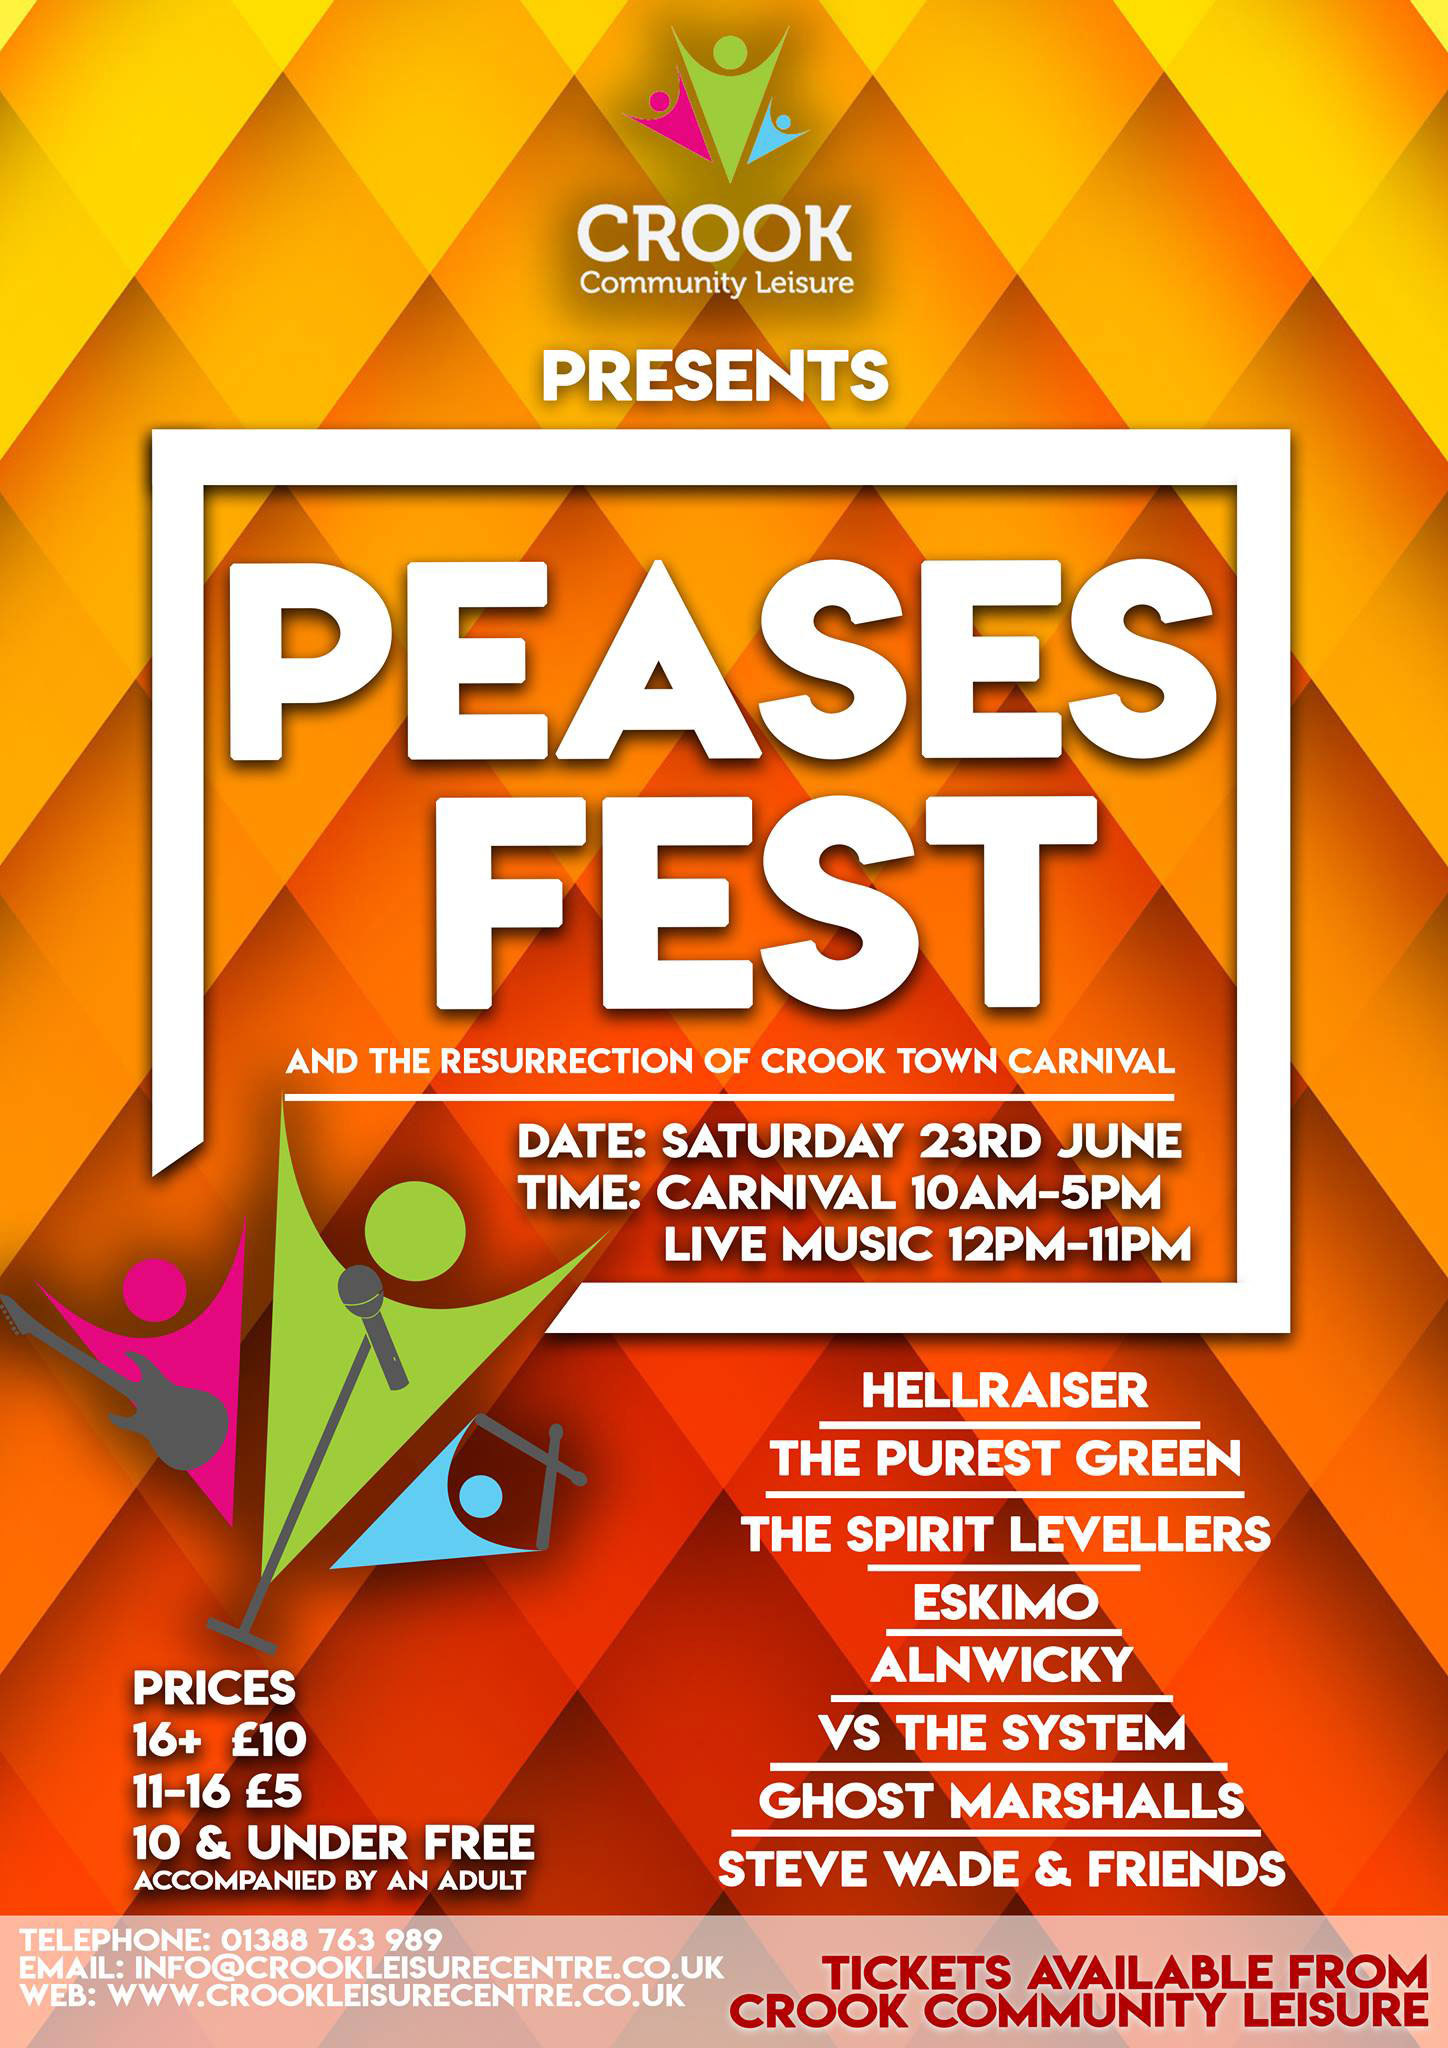 Peases Fest & the resurrection of Crook Town Carnival